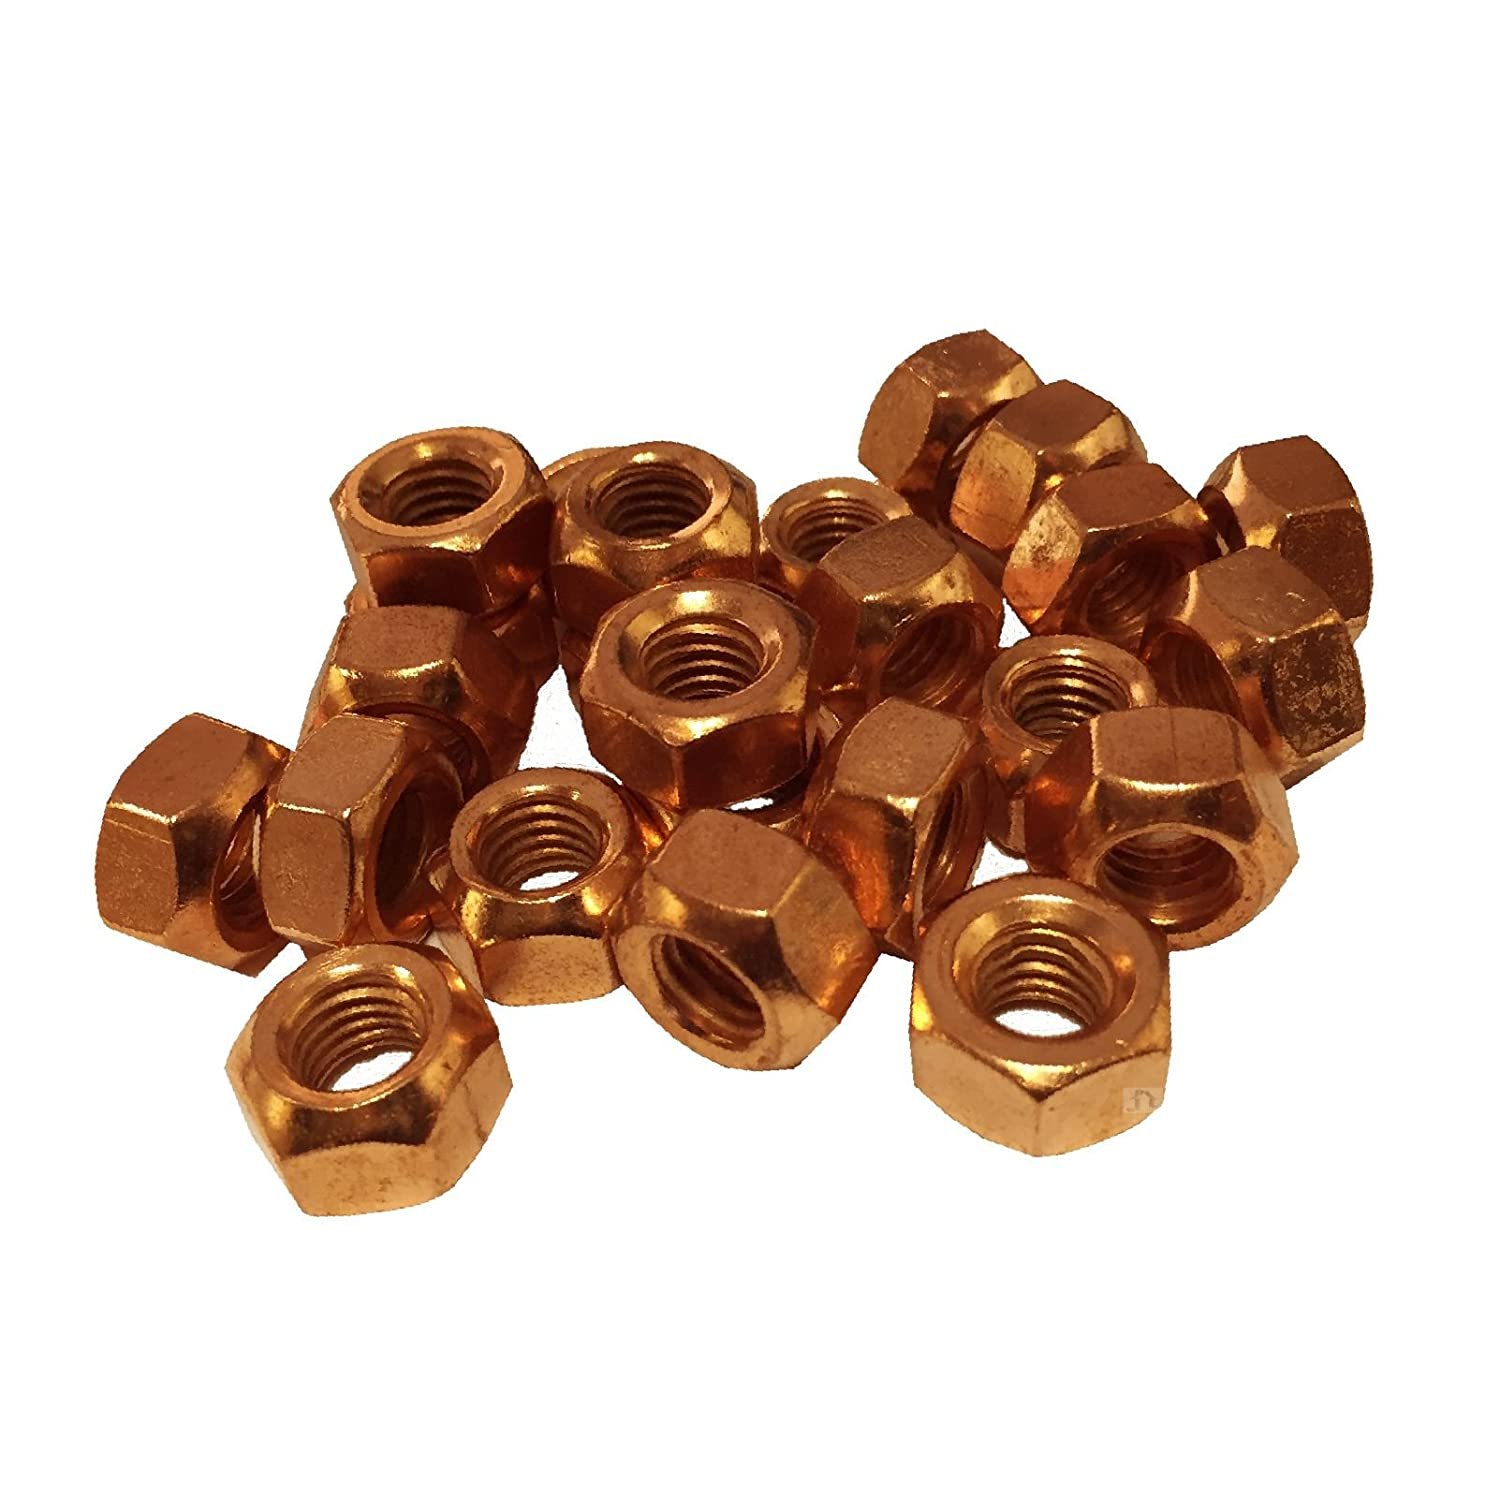 Smart home 6 x Copper Flashed Exhaust Manifold Nuts M8 x 1.25 Pitch High Temperature